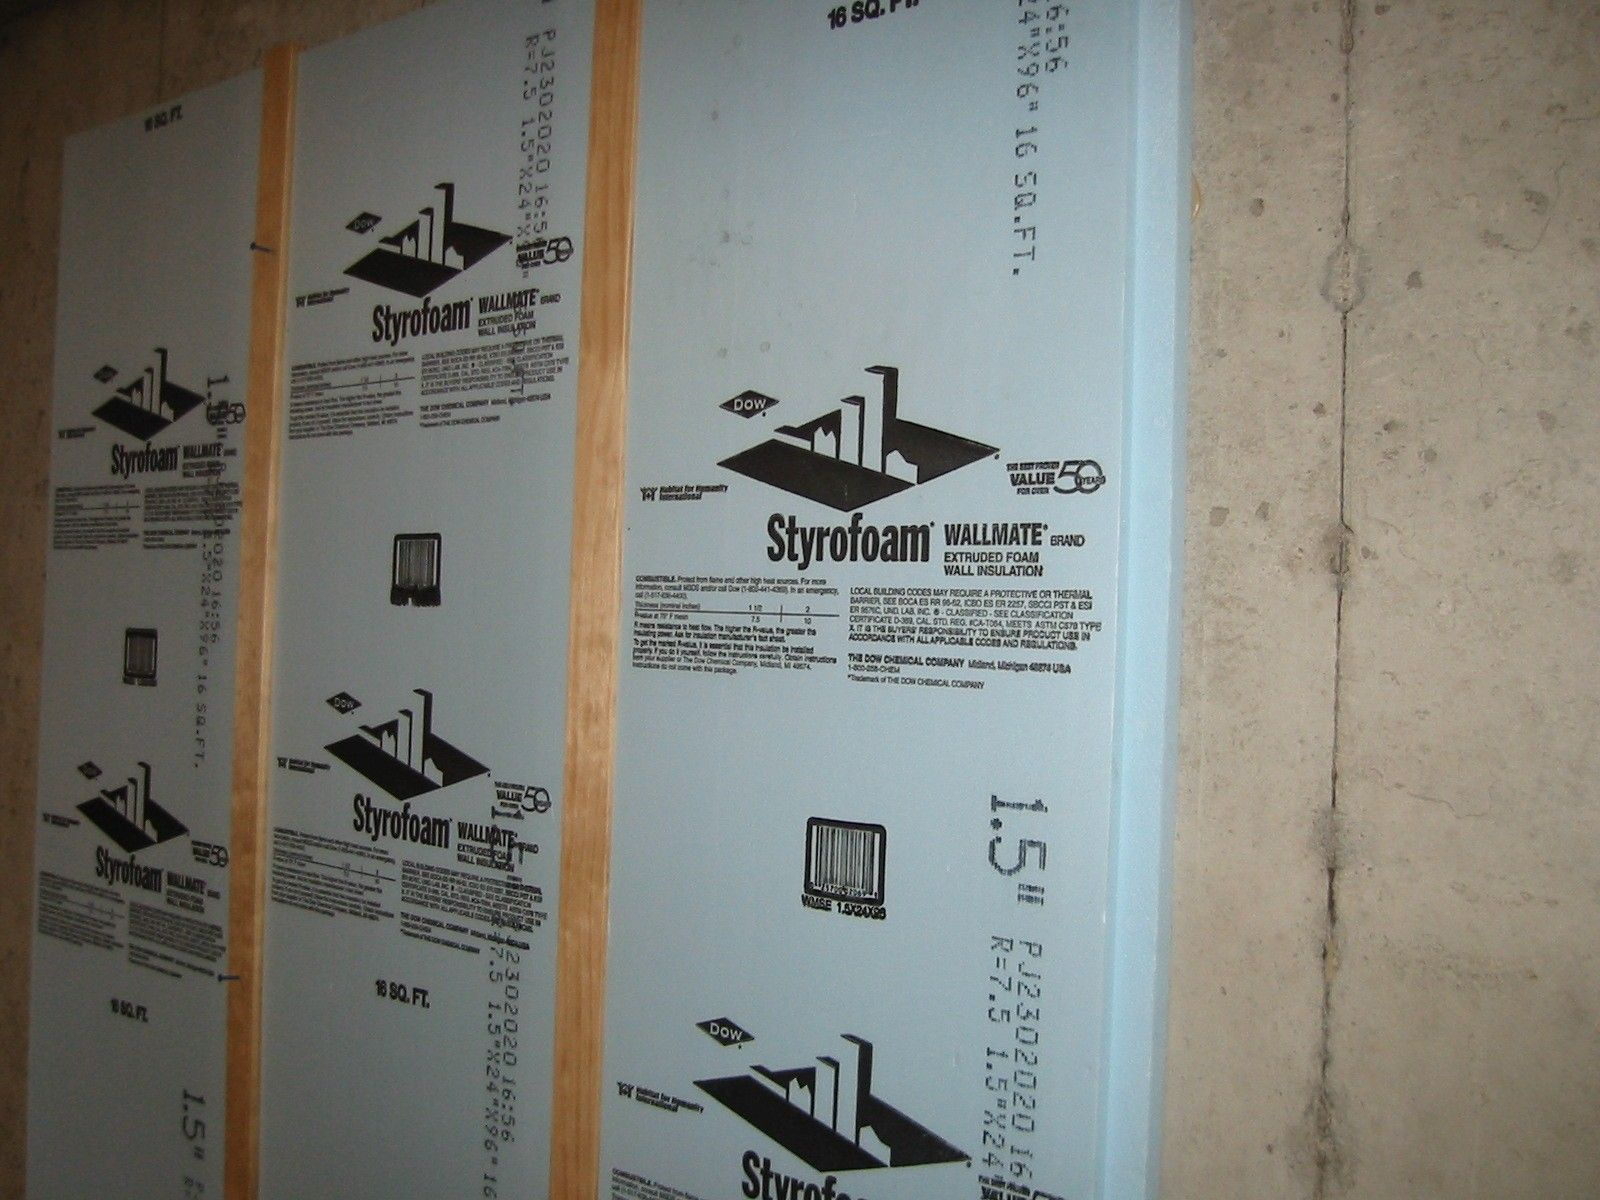 Insulating Basement Walls Procedures With Foam Board And